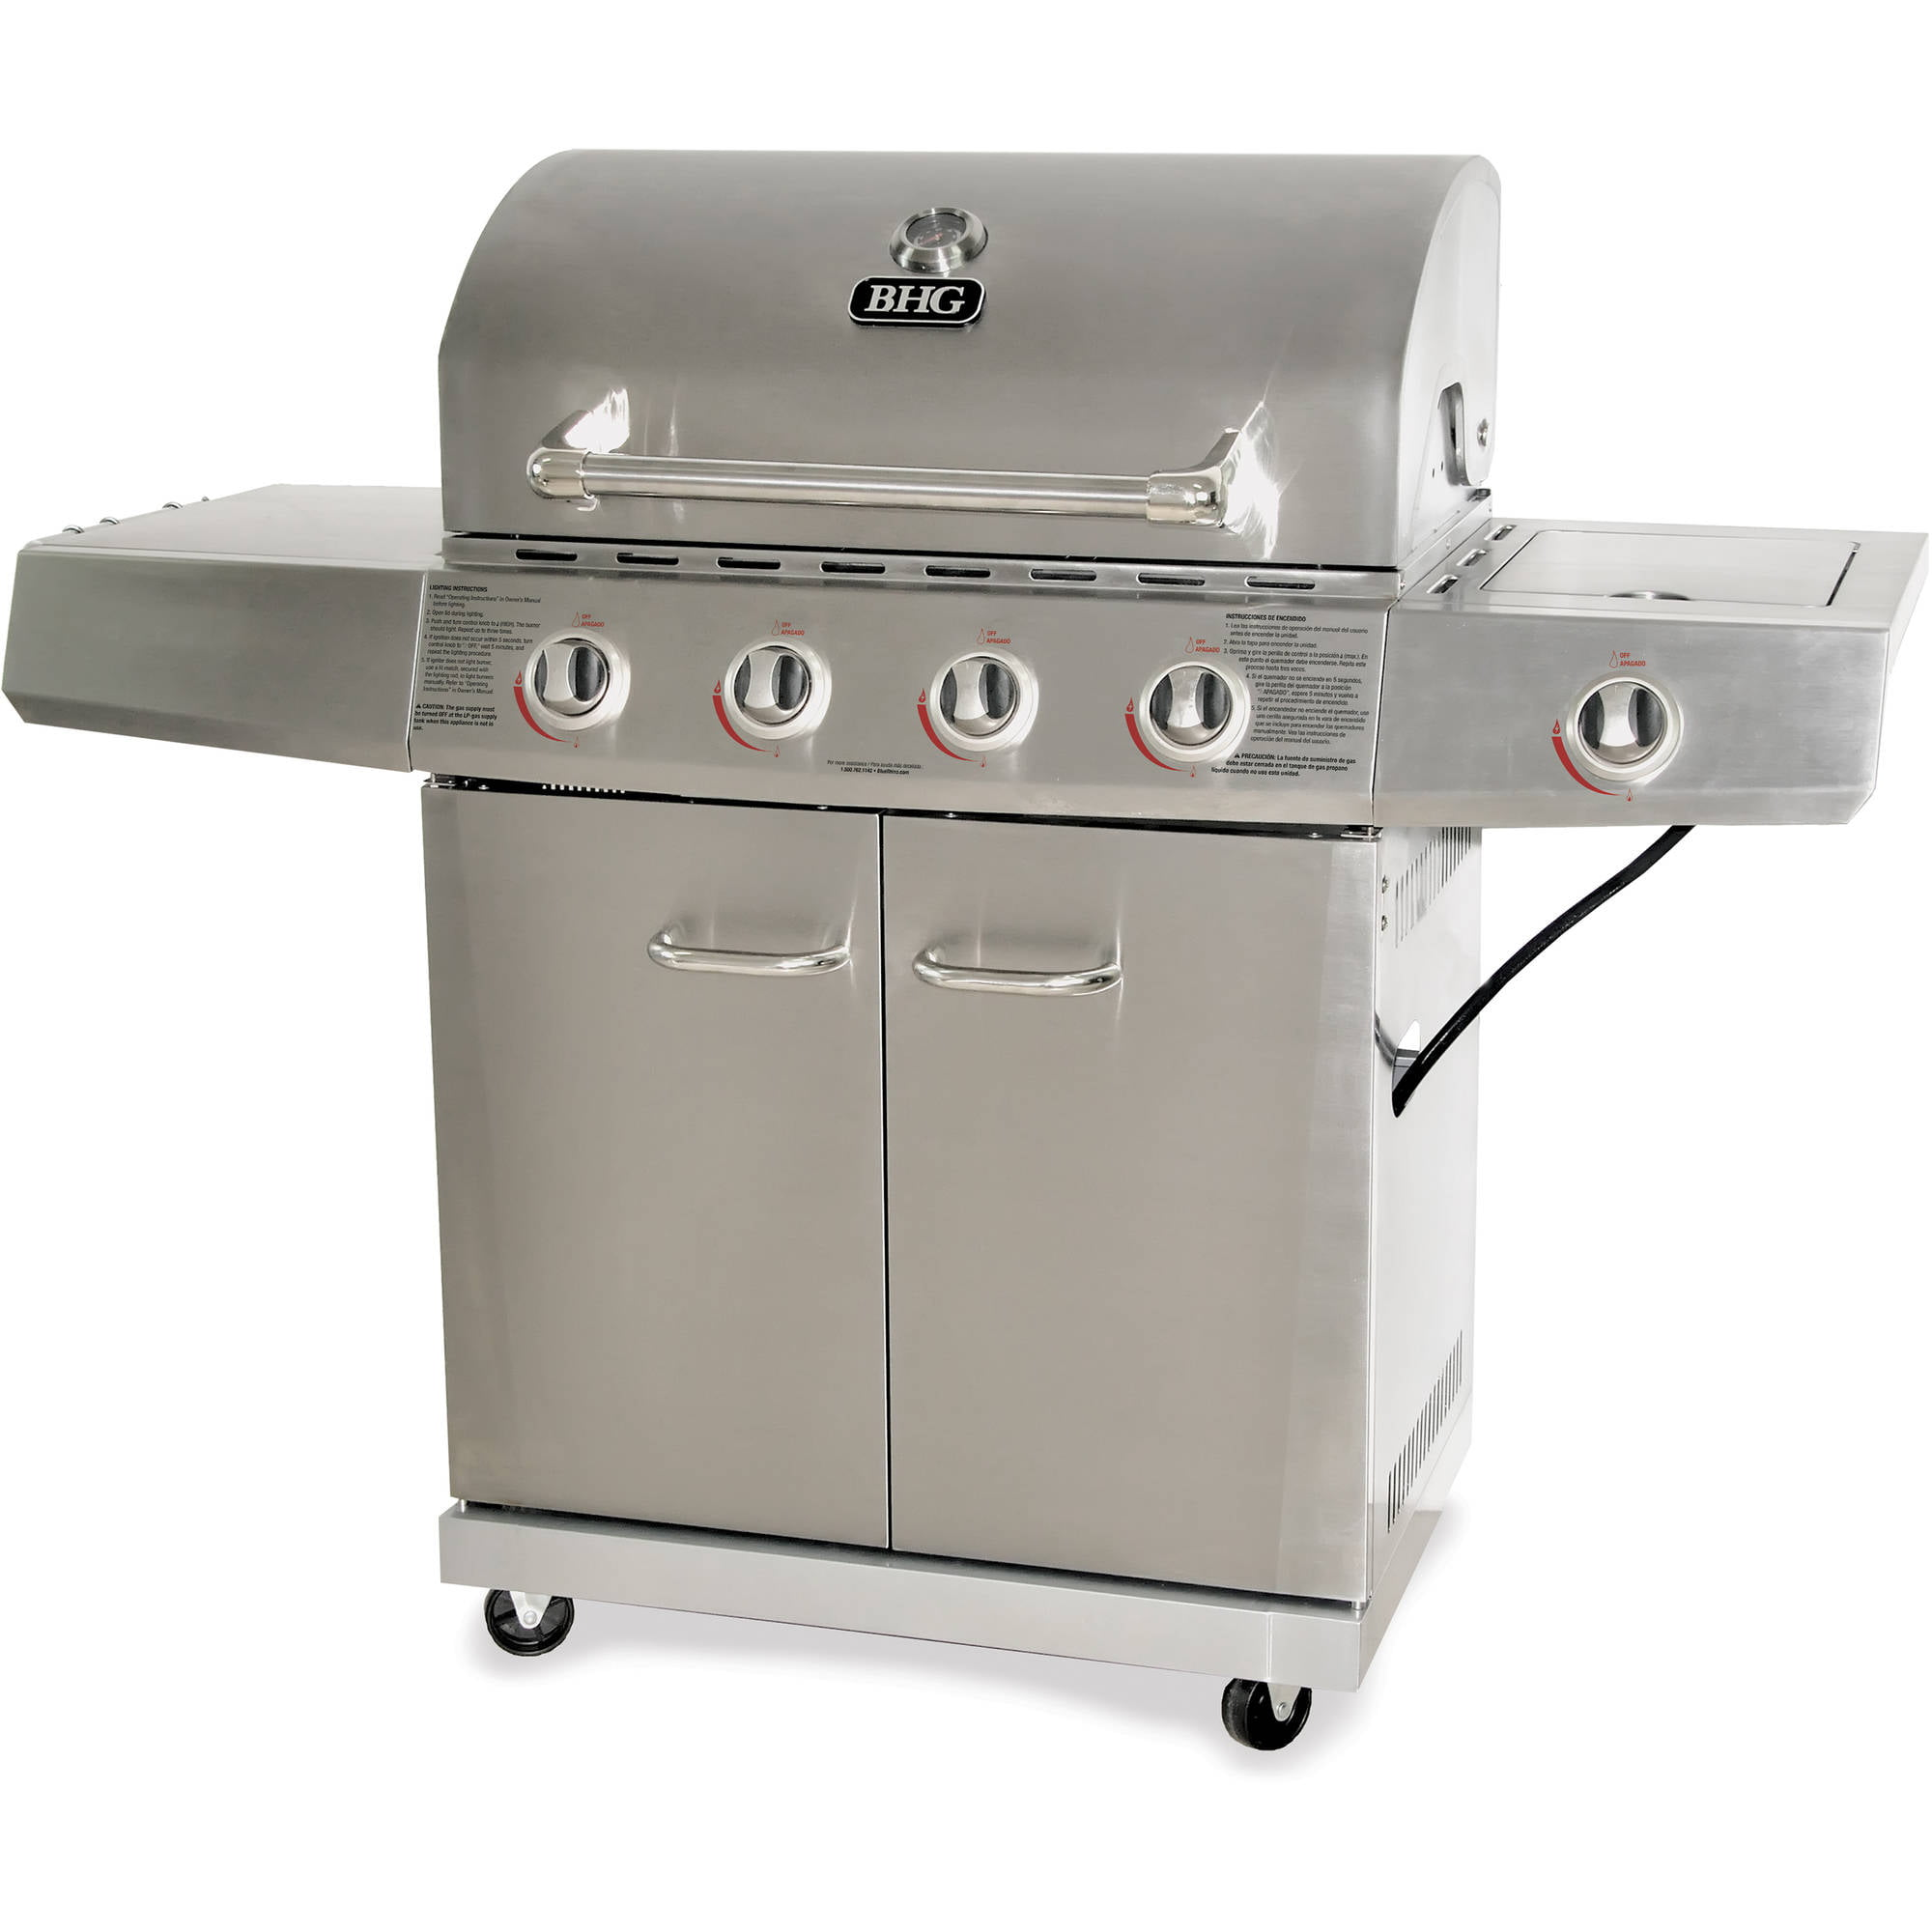 Better Homes and Gardens 4 Burner Gas Grill Stainless Steel